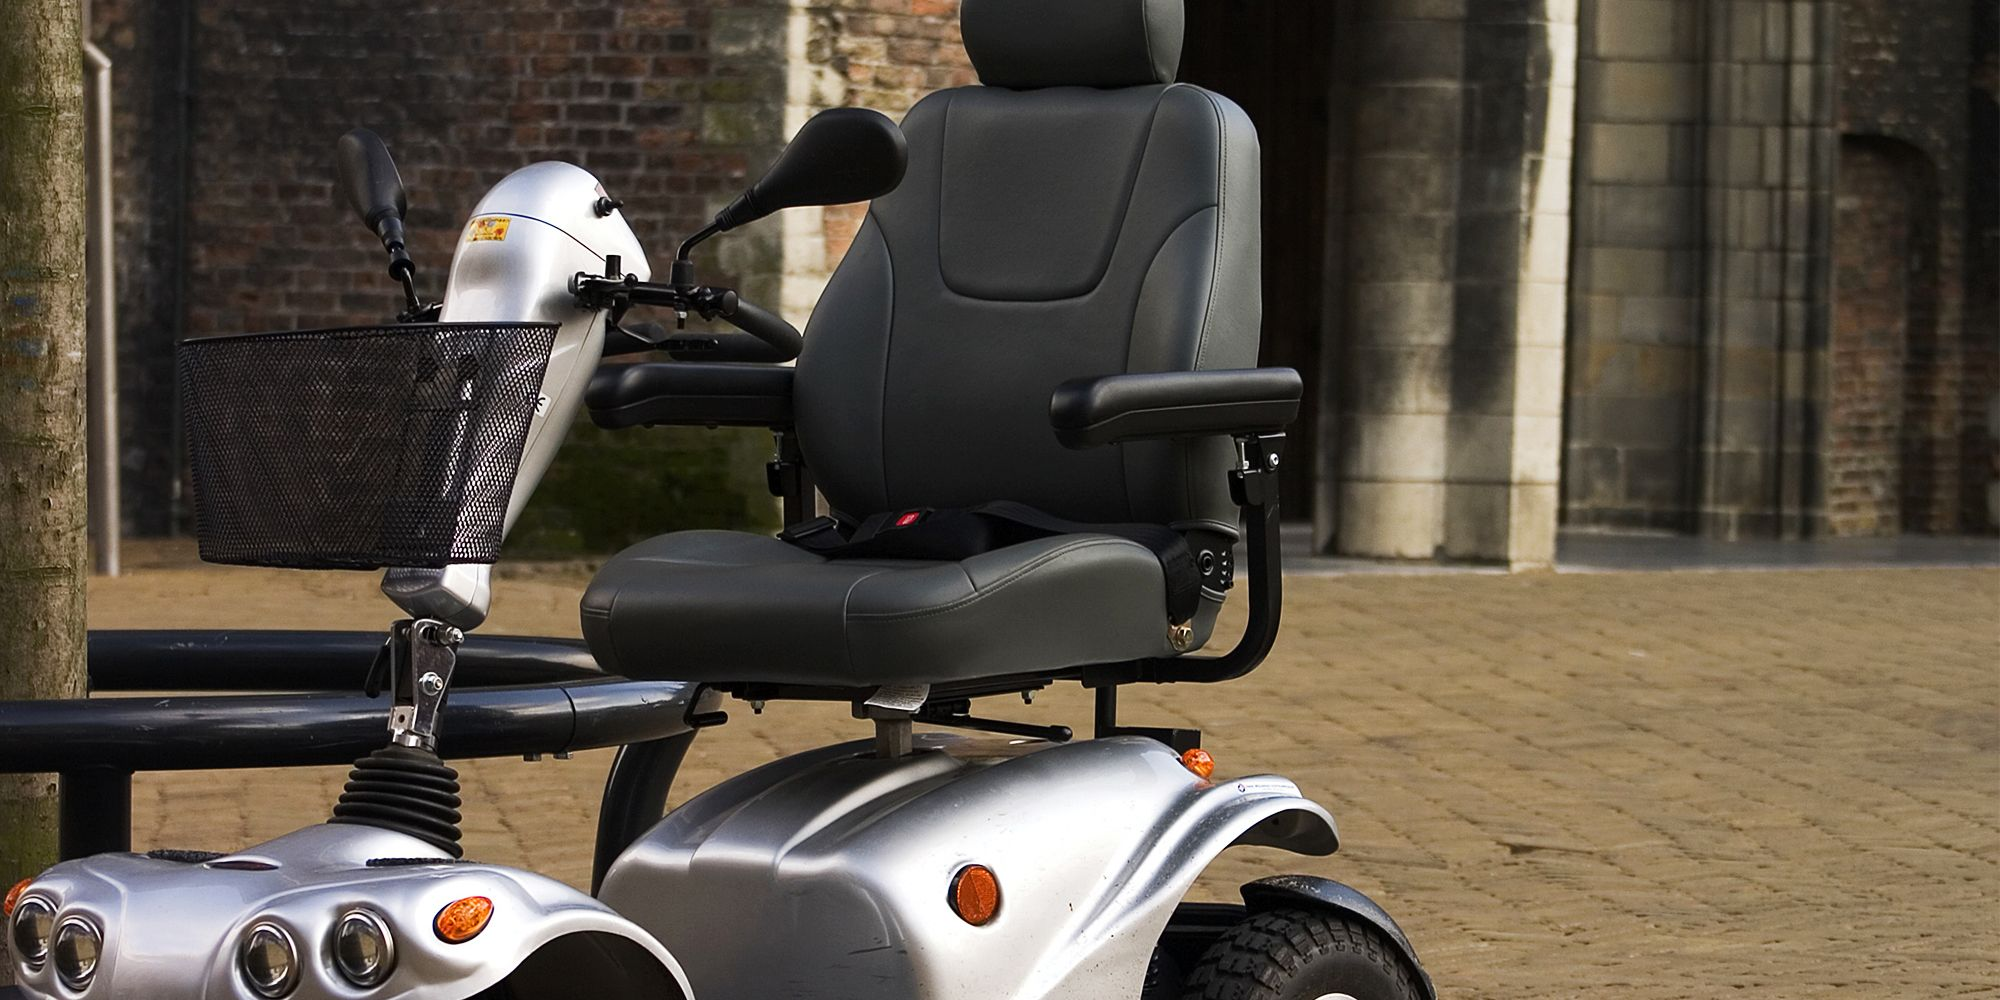 Grey-Mobility-scooter-minehead